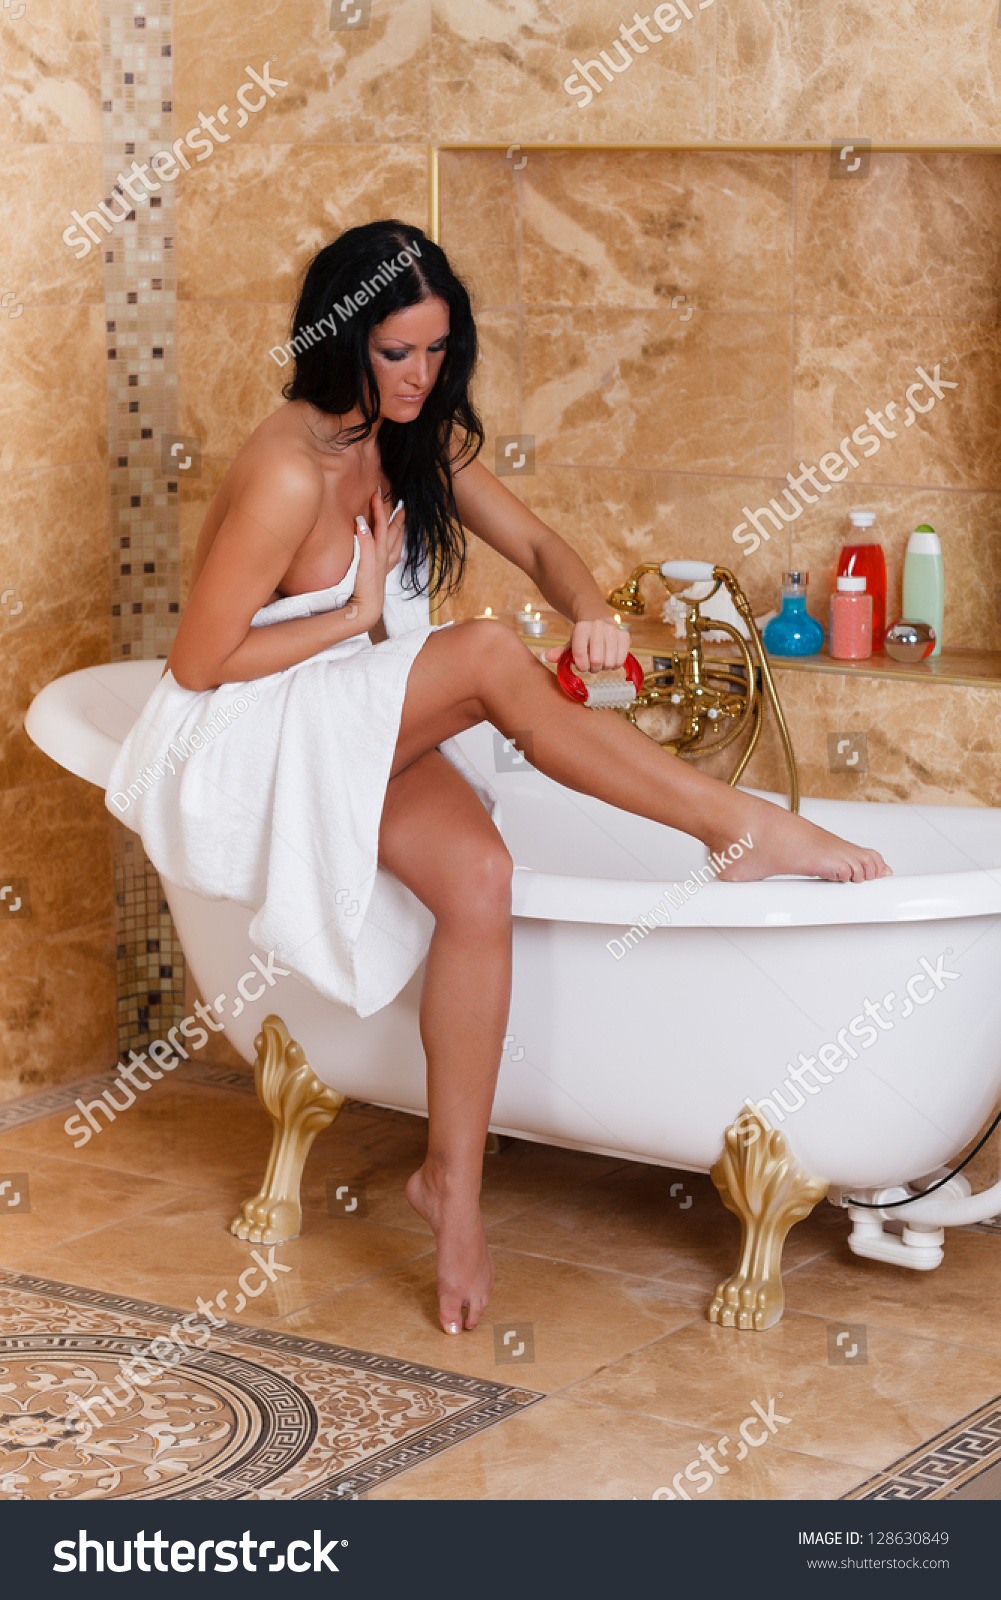 Young Woman Massager Bathroom Concept Body Stock Photo 128630849 ...